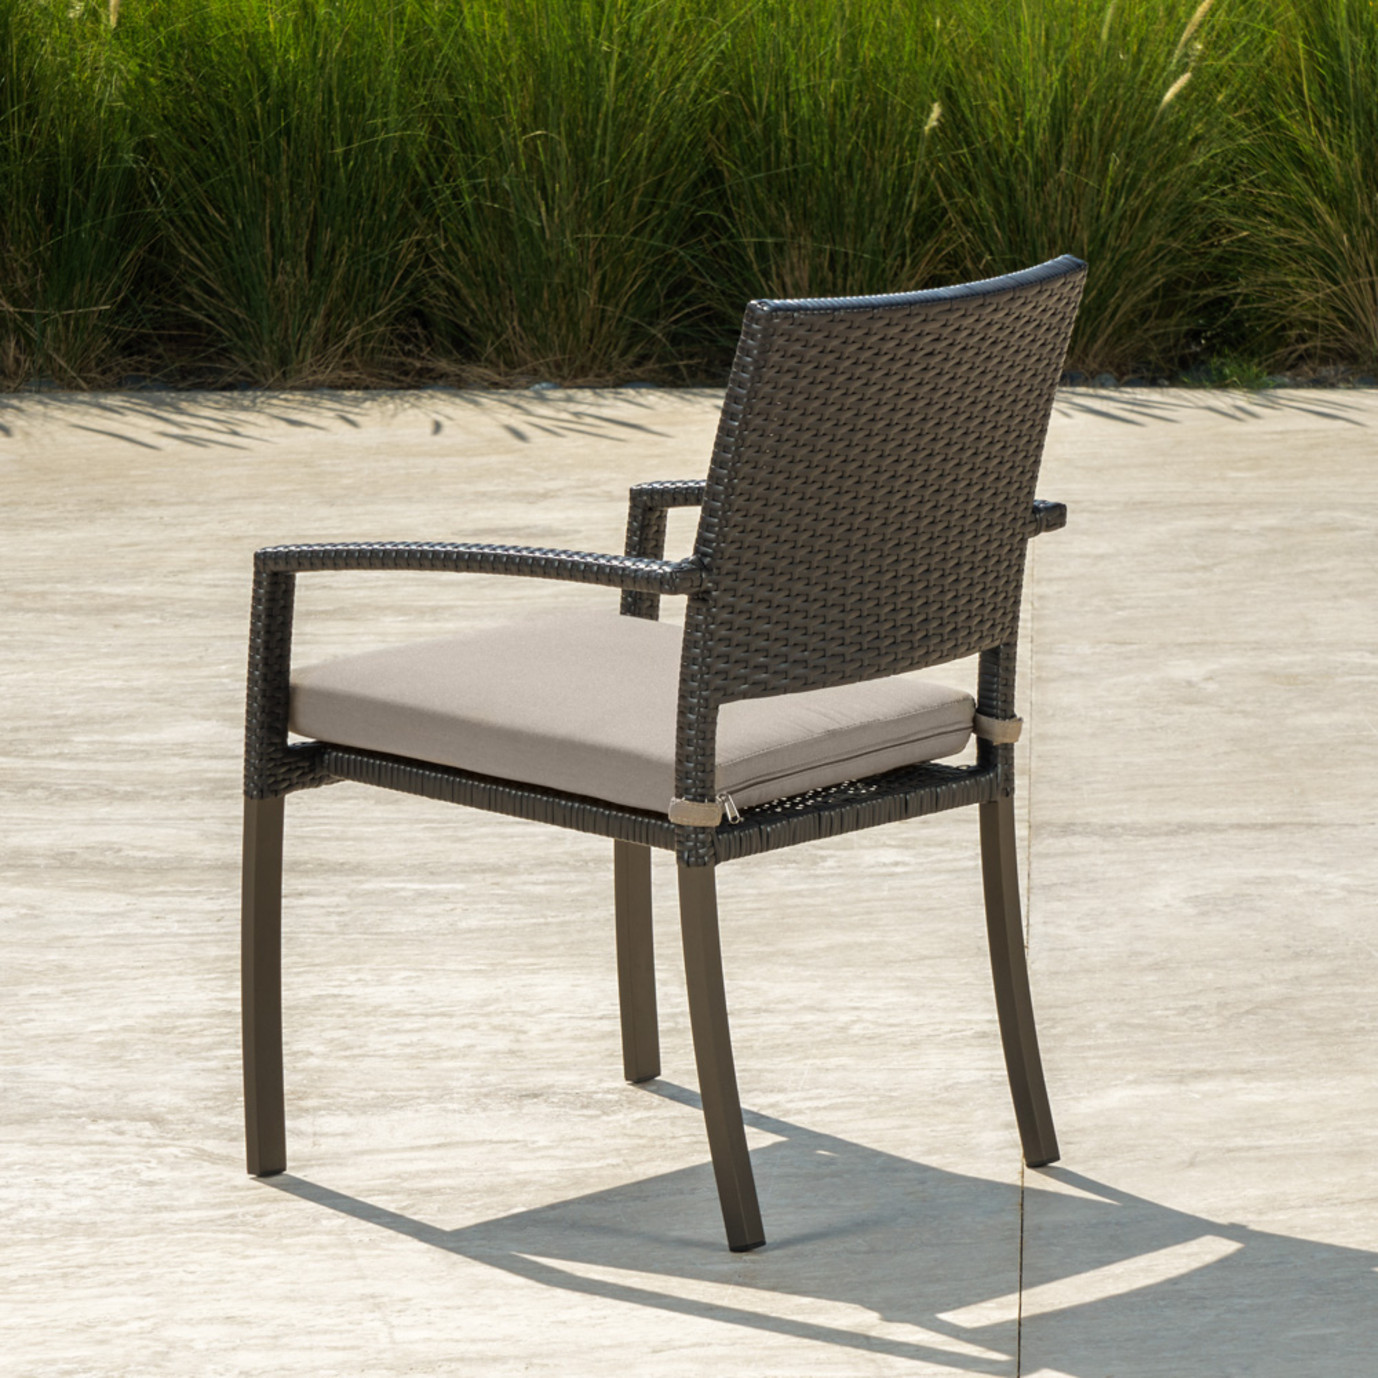 Portofino™ Casual 6pk Dining Chairs - Taupe Mist